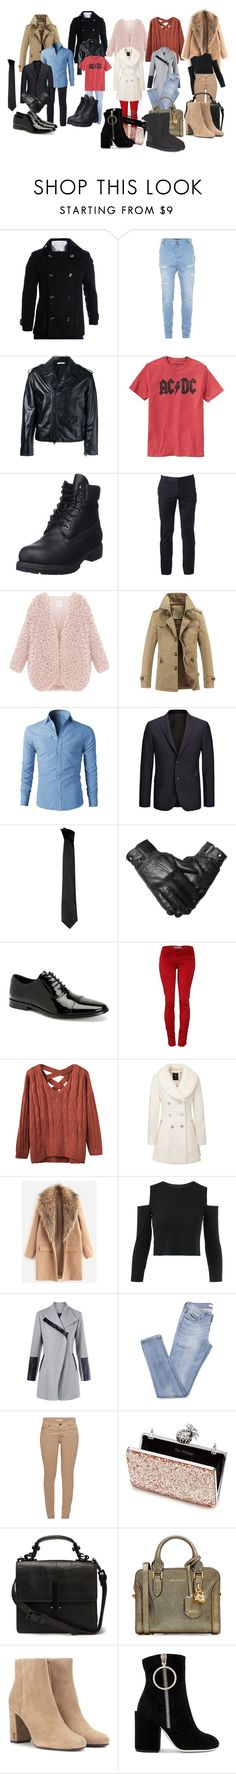 """""""A New Year's Eve Hangout!"""" by anikivance ❤ liked on Polyvore featuring Topman, Givenchy, Gap, Timberland, Urban Pipeline, Joseph, Versace, Calvin Klein, Barbour and Miss Selfridge"""